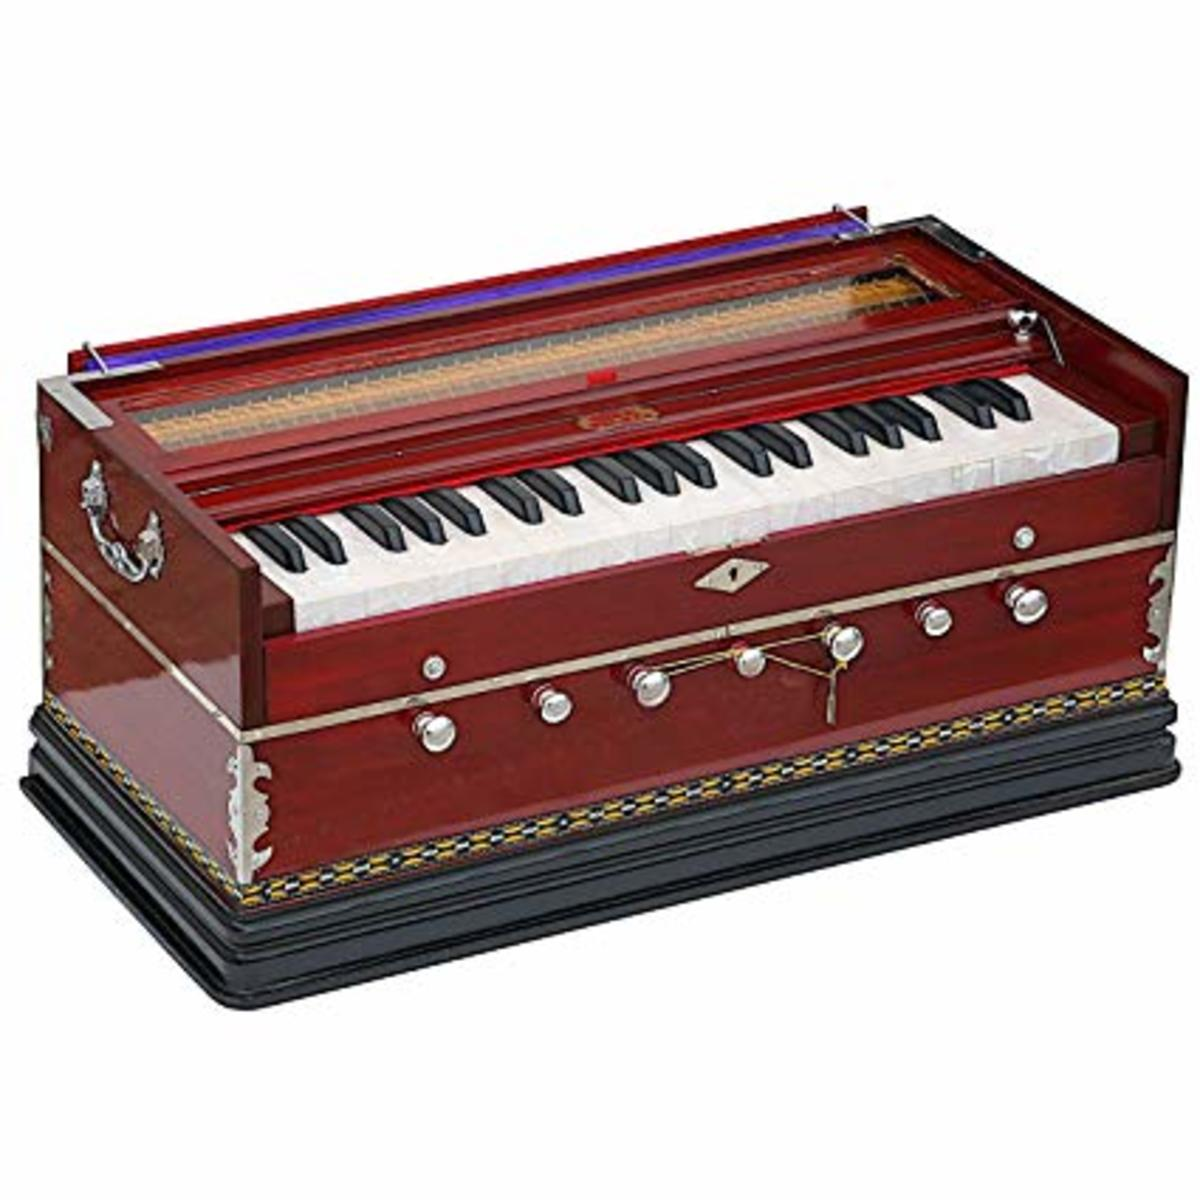 Indian musical instrument, Harmonium